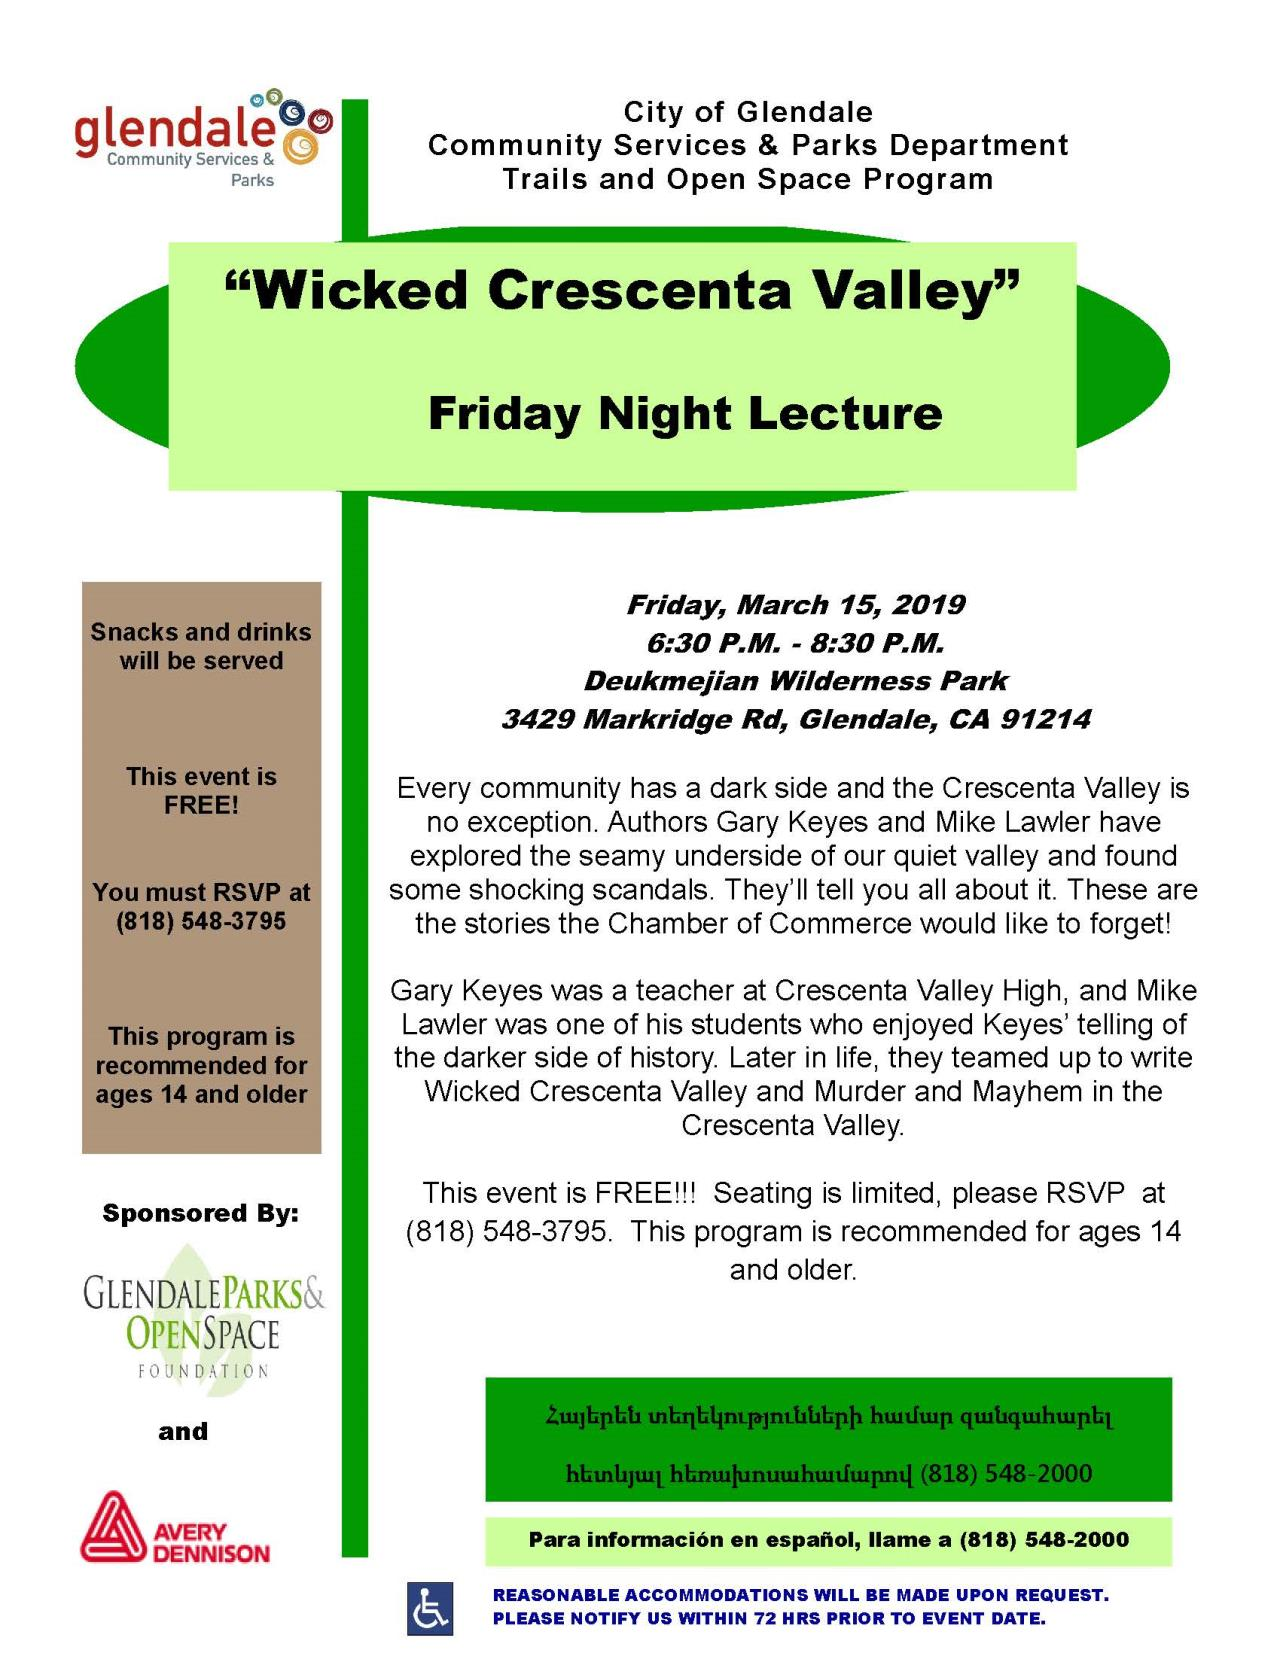 Wicked Crescenta Valley